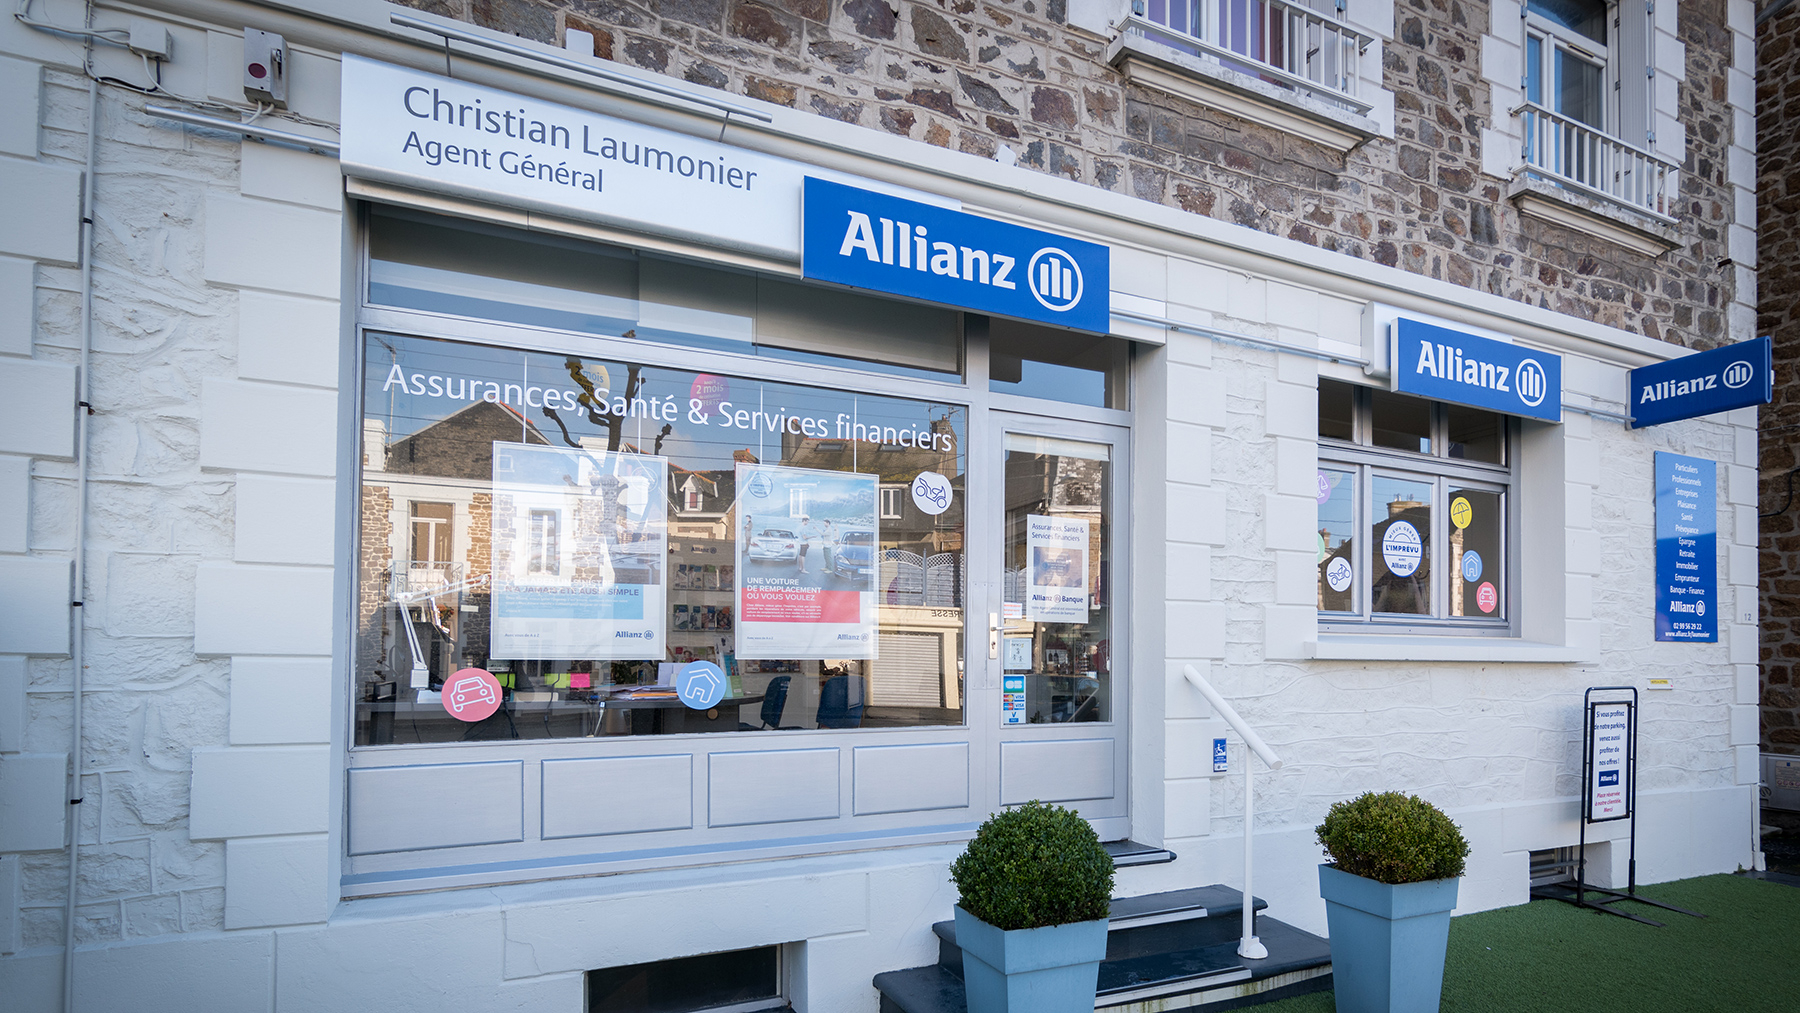 Allianz SAINT MALO - Christian LAUMONIER